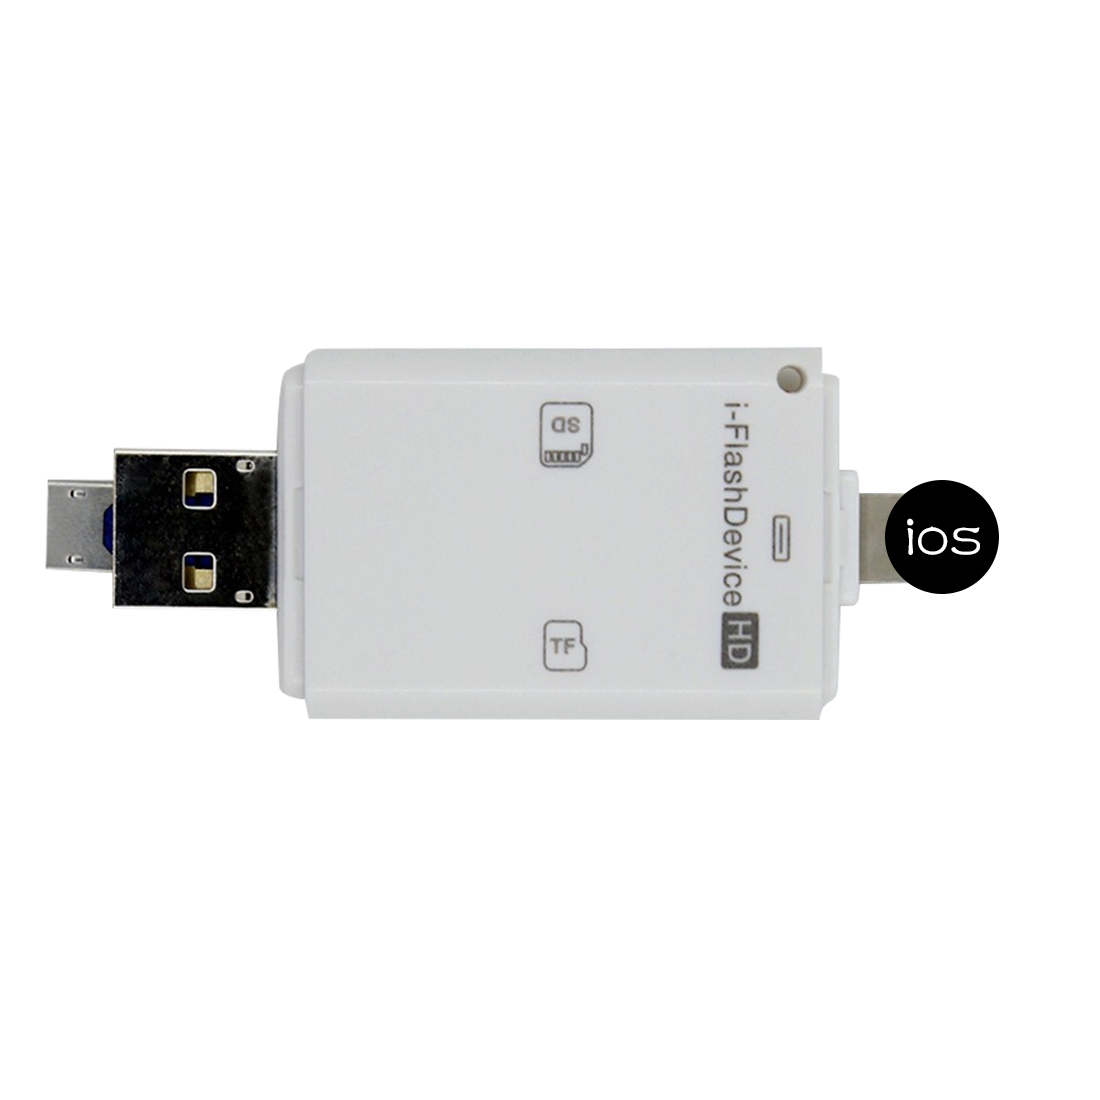 Etmakit 3in1 Micro USB Reader Micro SD SDHC TF SD Karte Für iPhone 5/5 s/6/ 6 7 plus/ipad pro air/Samsung/LG/HTC Andrid OTG Handys